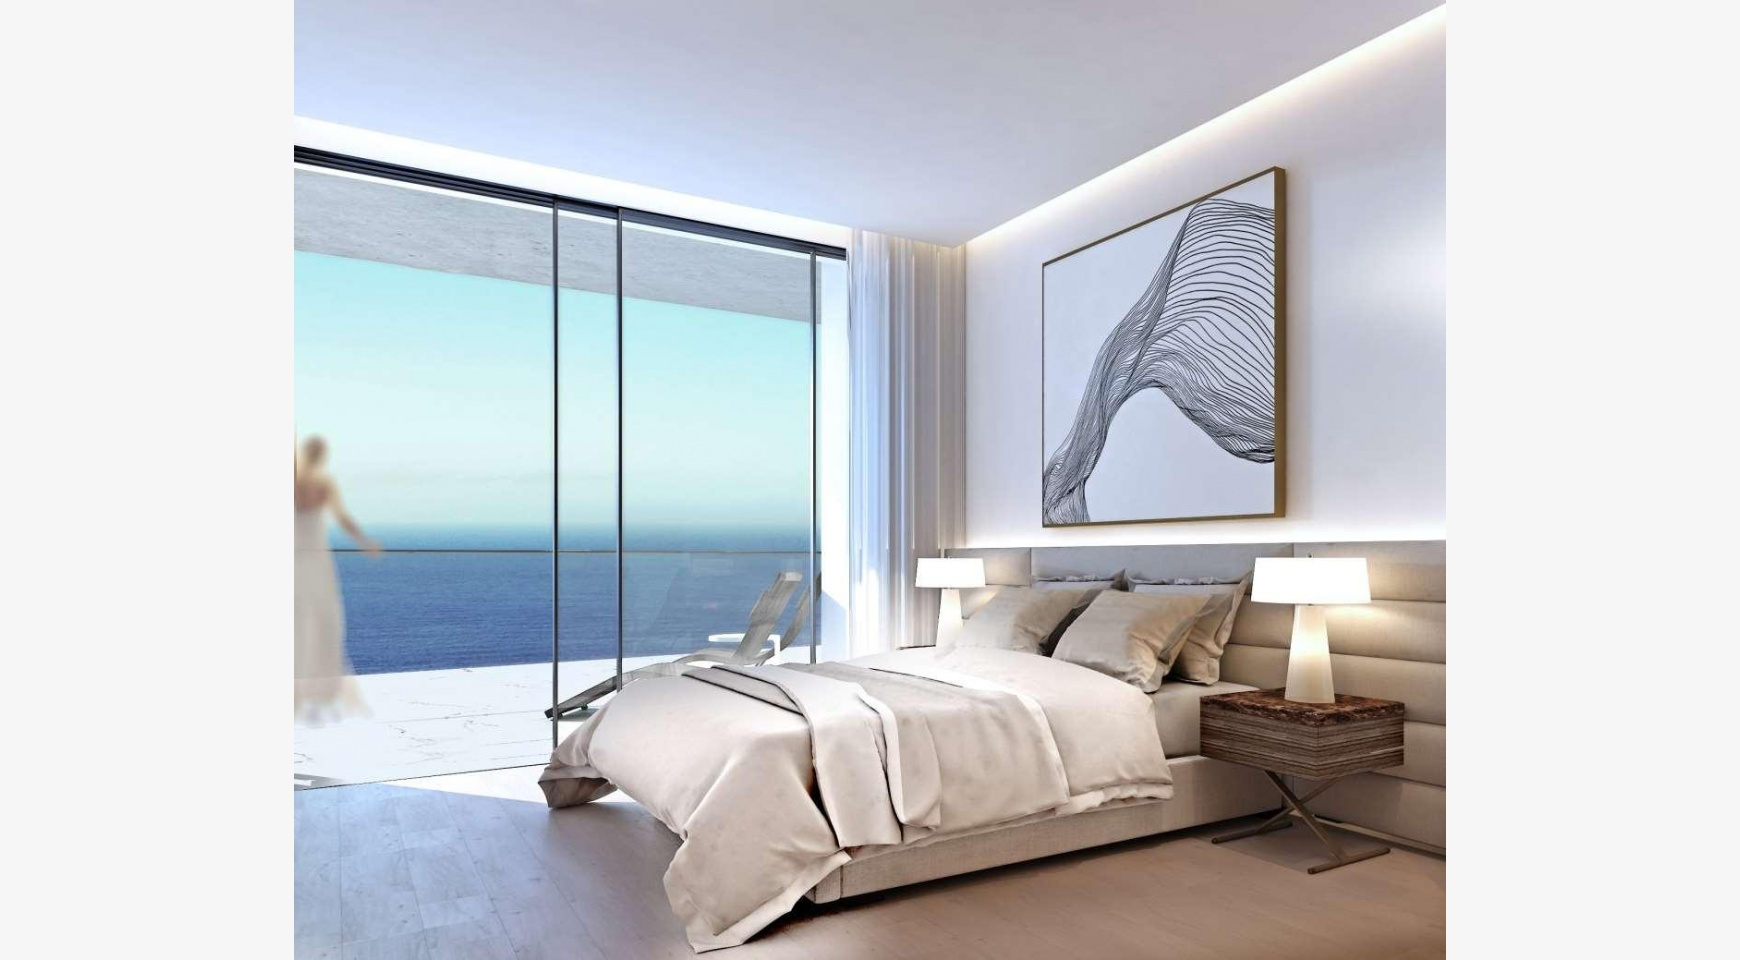 Luxury 2 Bedroom Apartment in a New Project by the Sea in the City Centre - 8